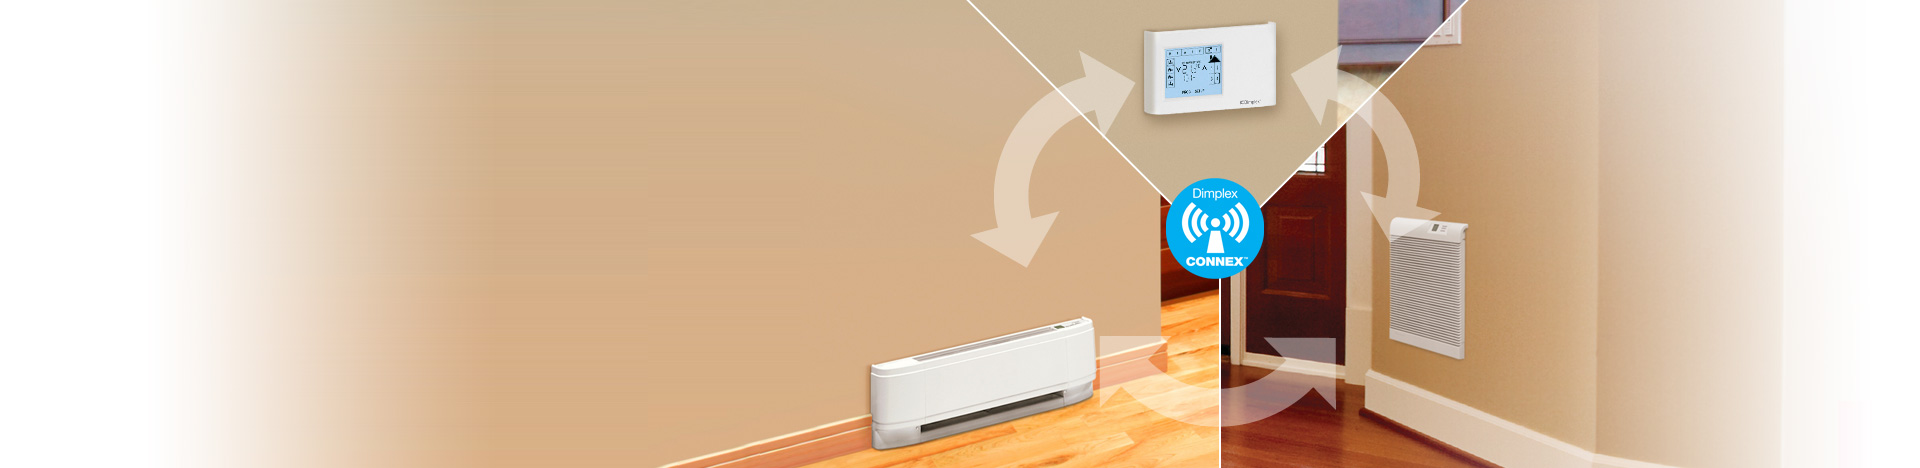 Dimplex Uses Ayla Iot Technology To Enhance Its Next Generation Residential Electric Heaters Networks Announced That It Is Working In Partnership With North America Incorporate Into Heating